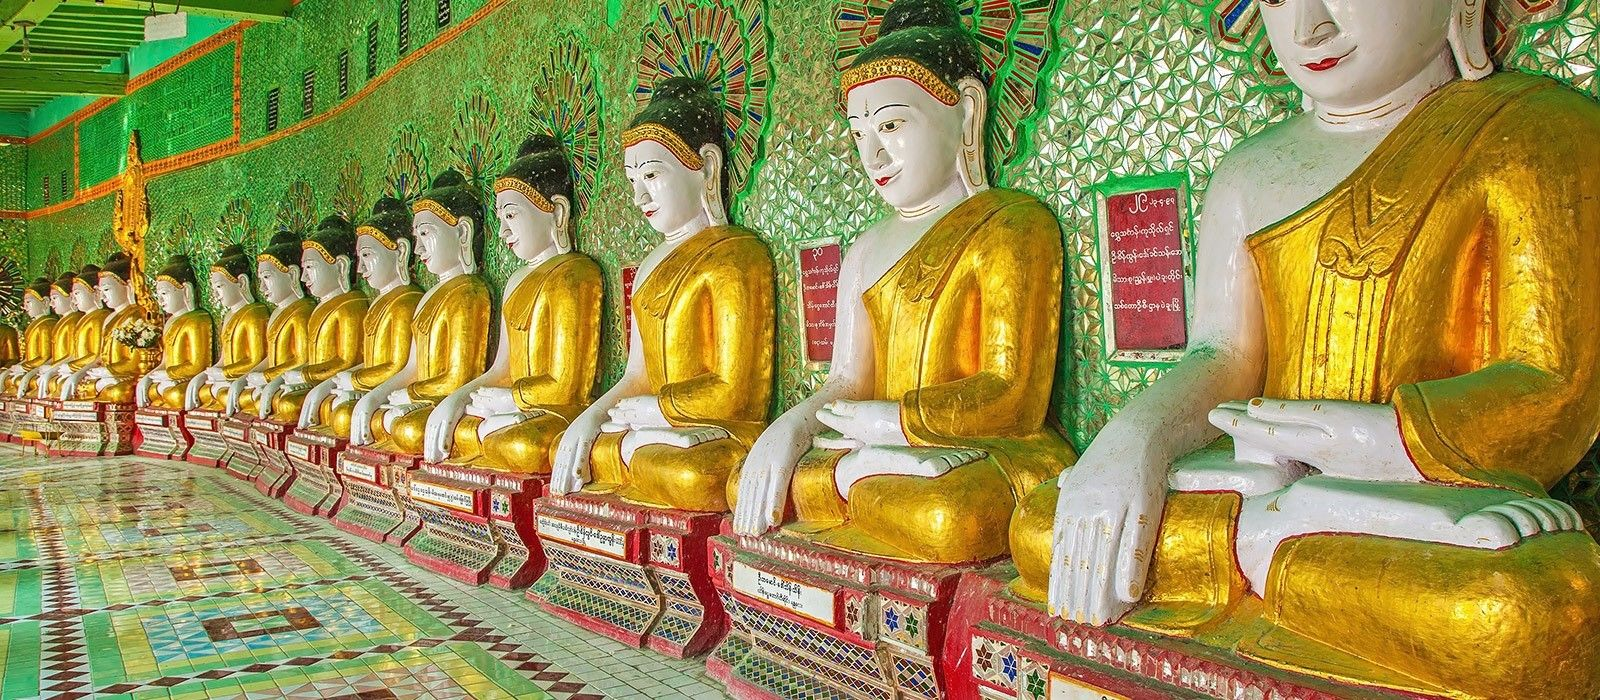 Destination Mandalay / Ayeyarwady Myanmar